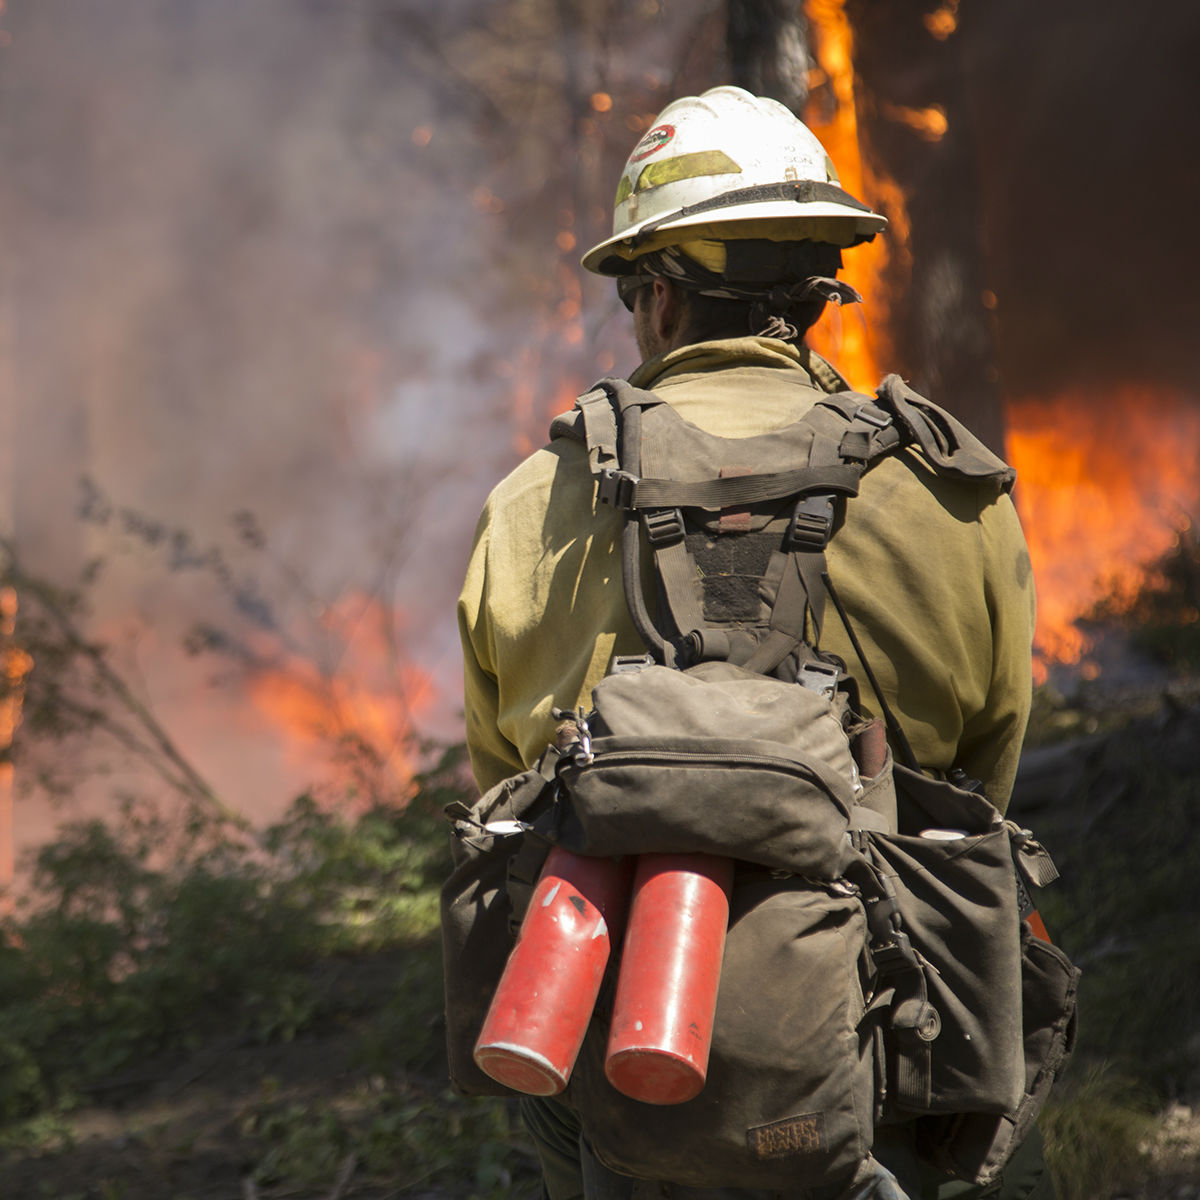 Firefighter standing in front in wildfire.